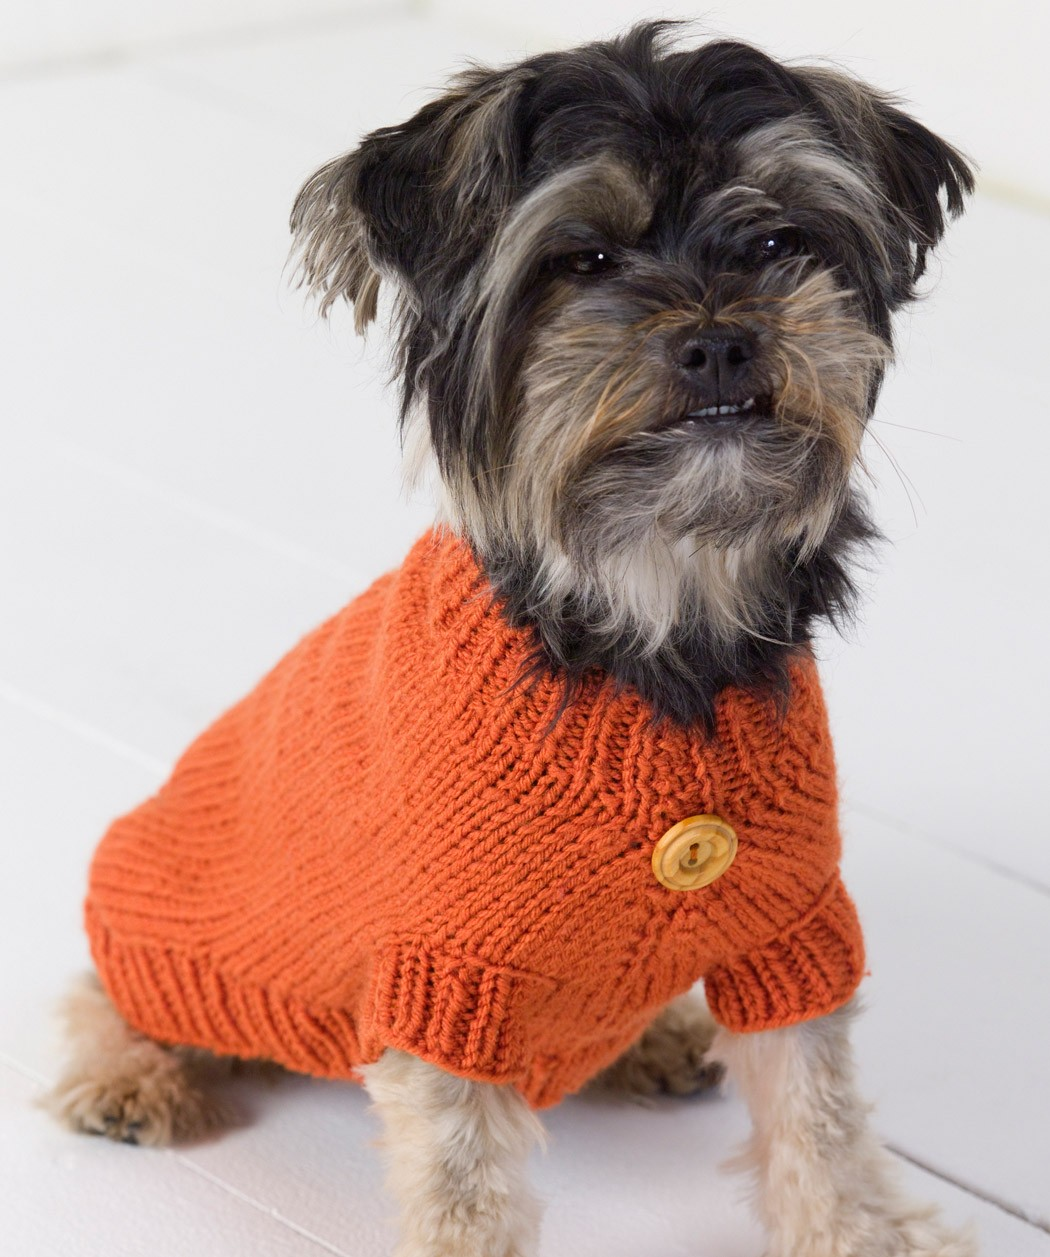 Dog Coat Knitting Pattern : Dog sweater knitting pattern a